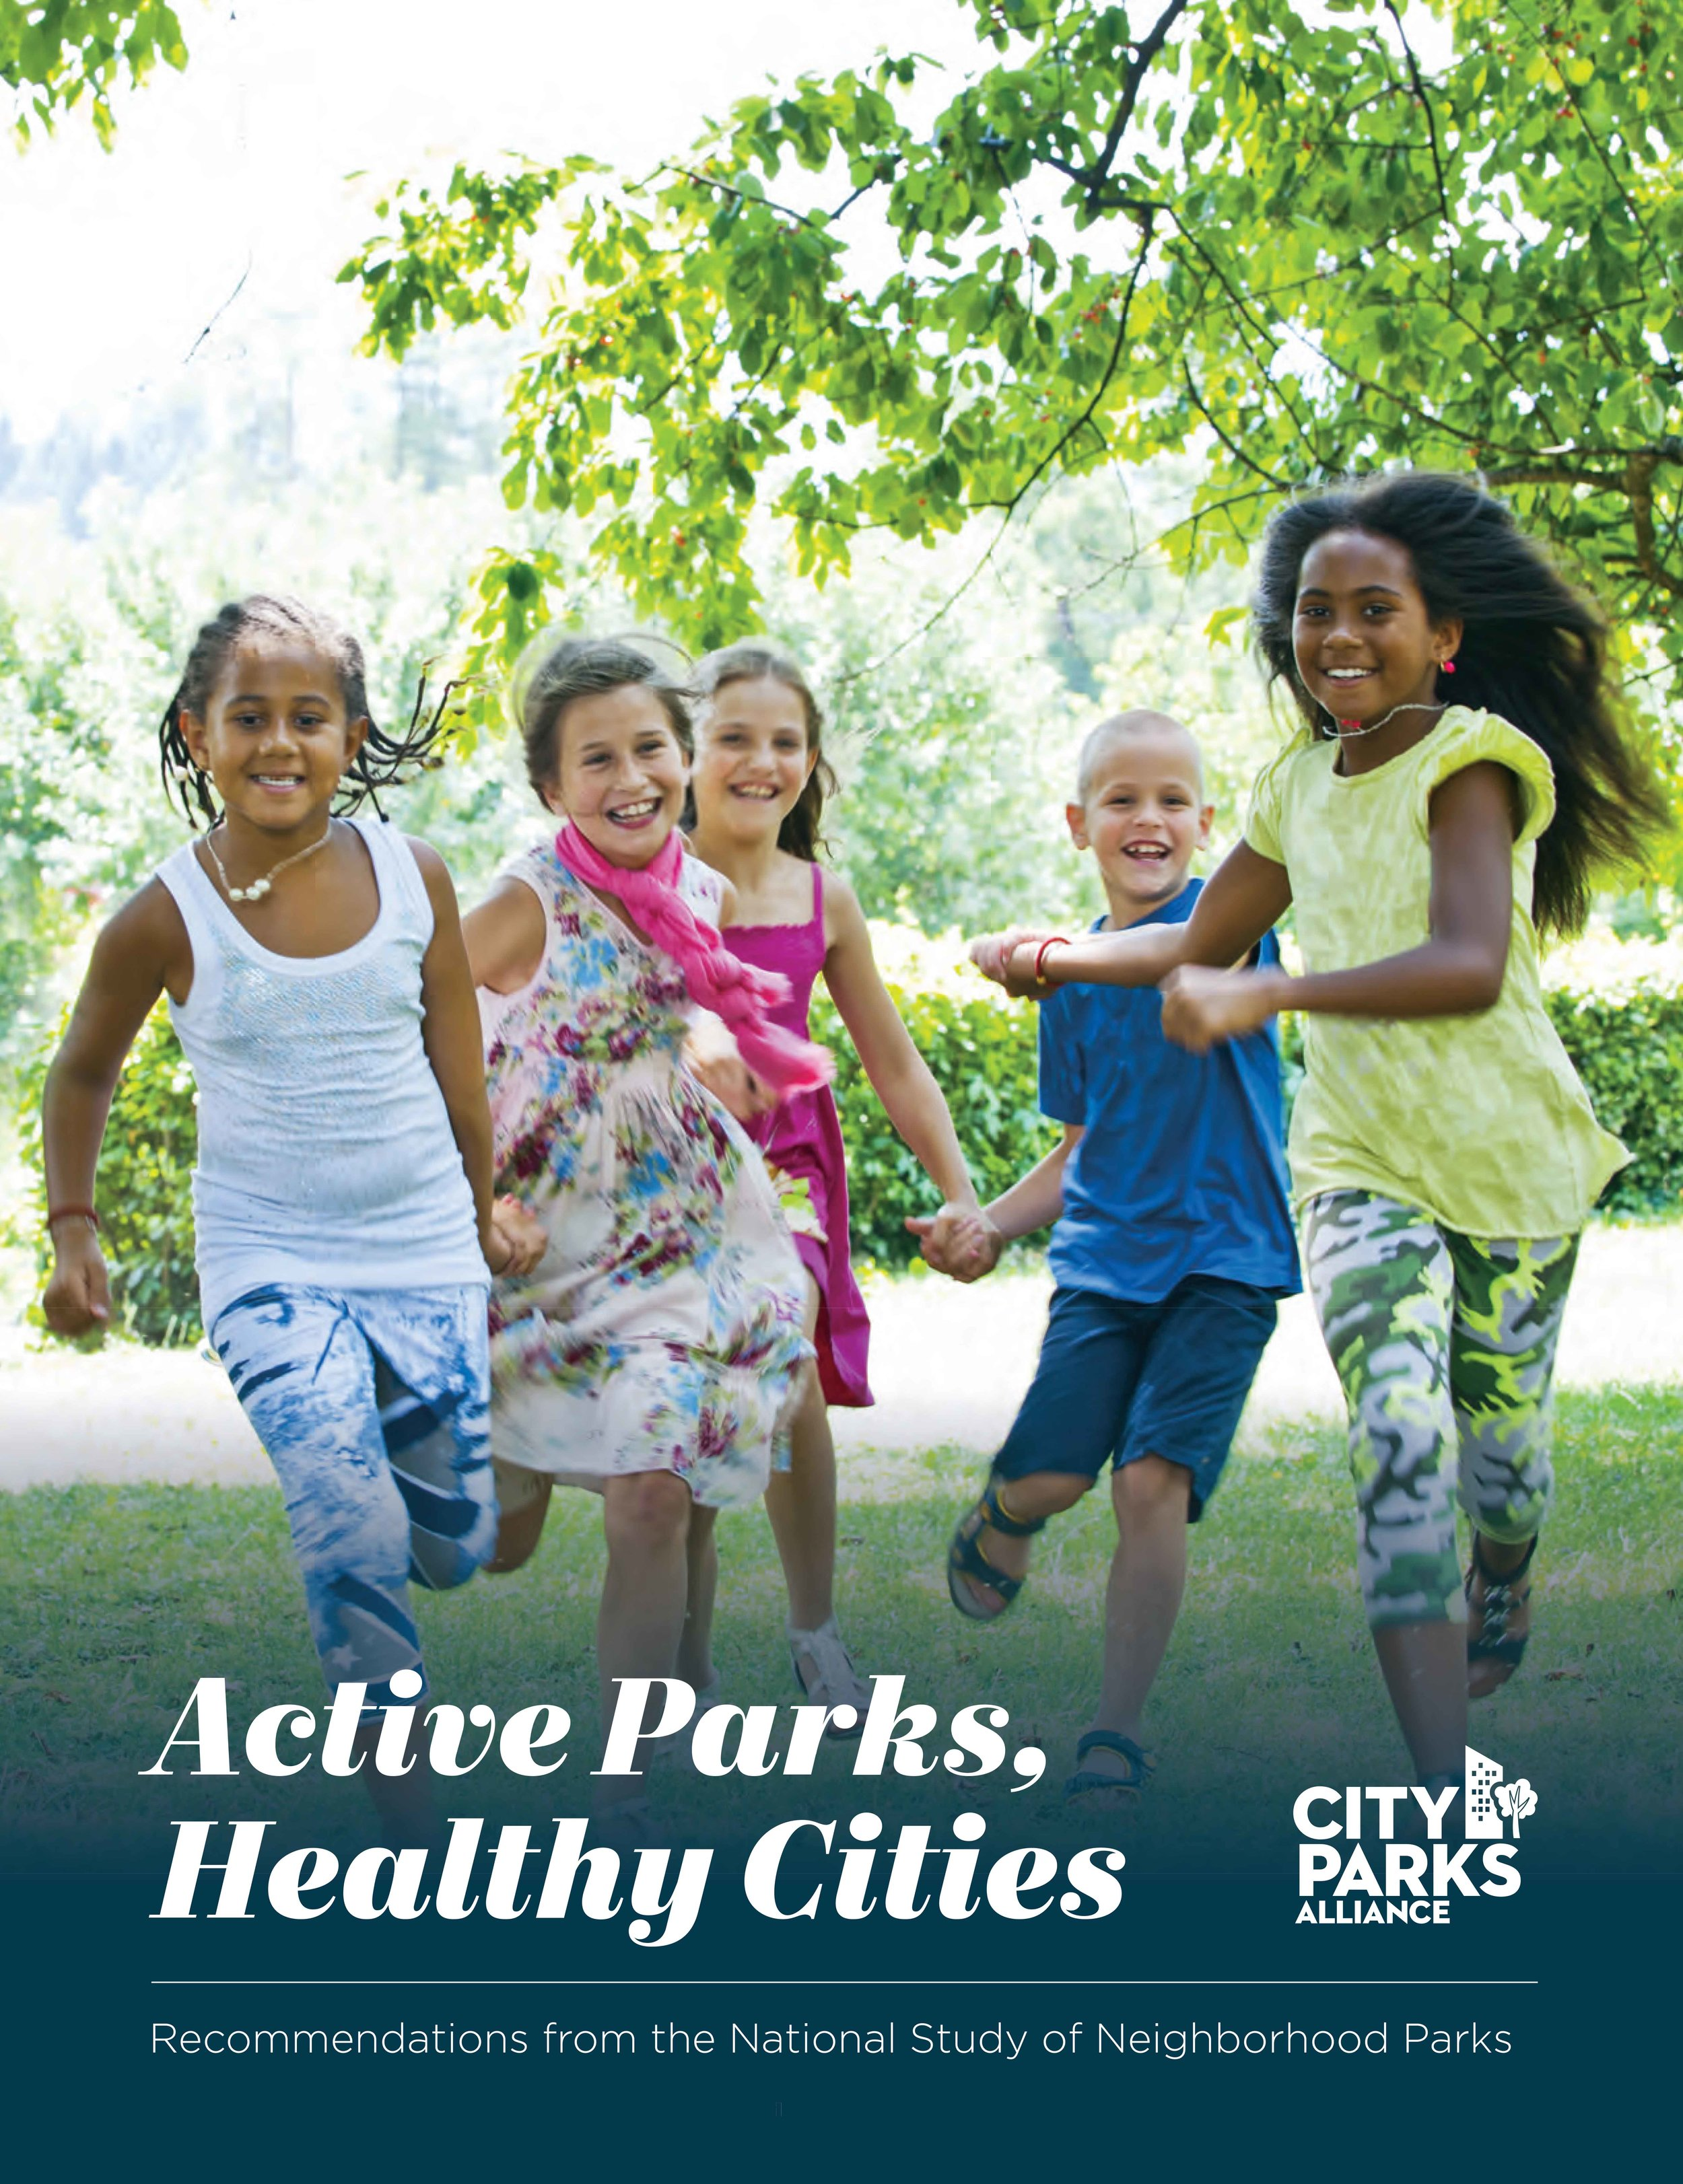 active-parks-healthy-cities-1.jpg